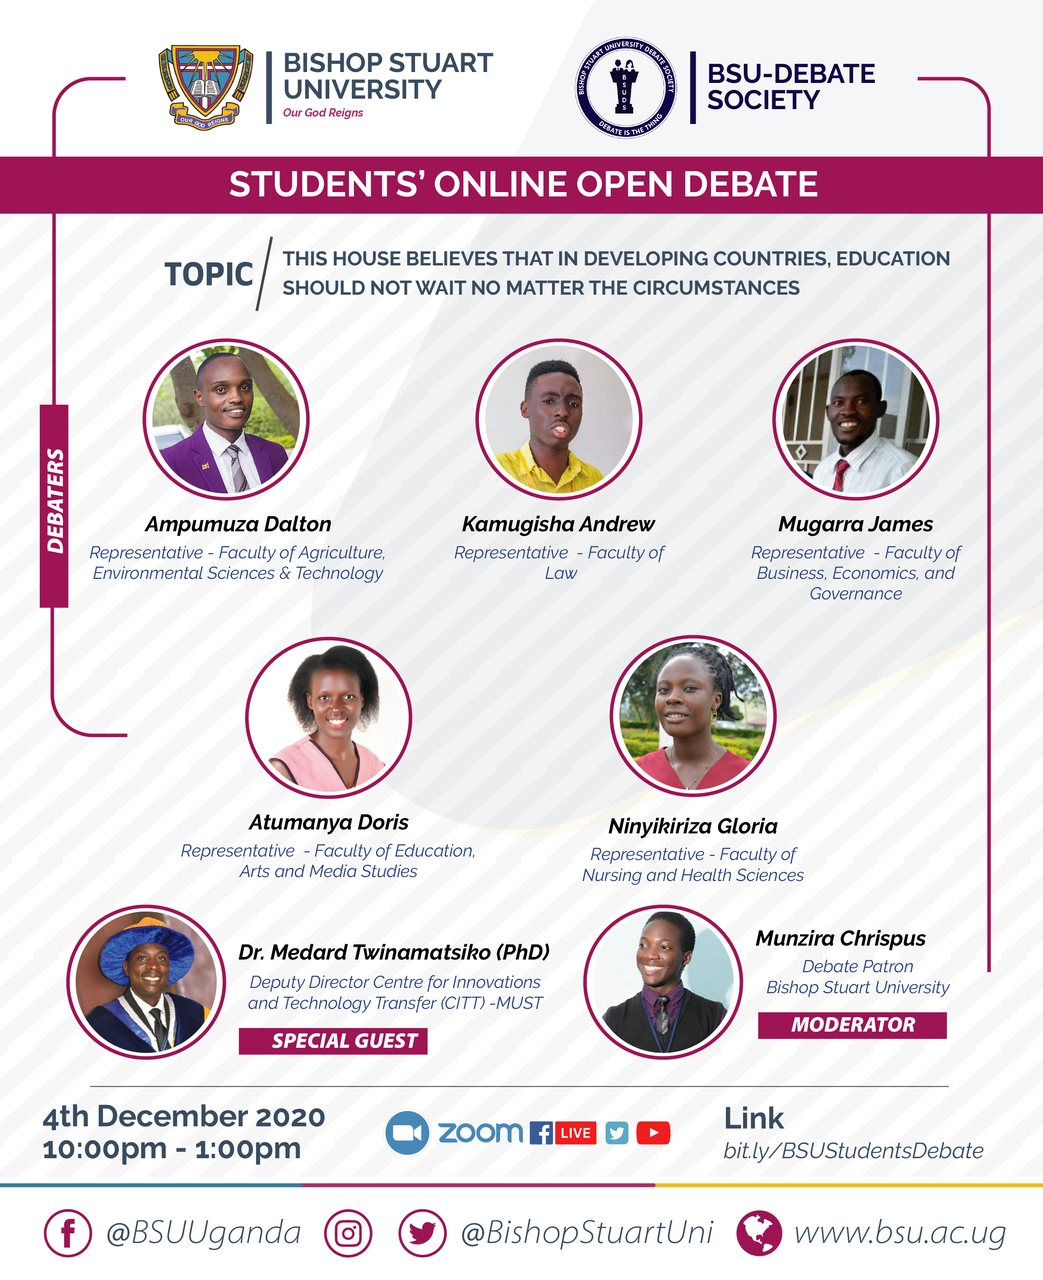 Bishop Stuart University Student's Online Open Debate